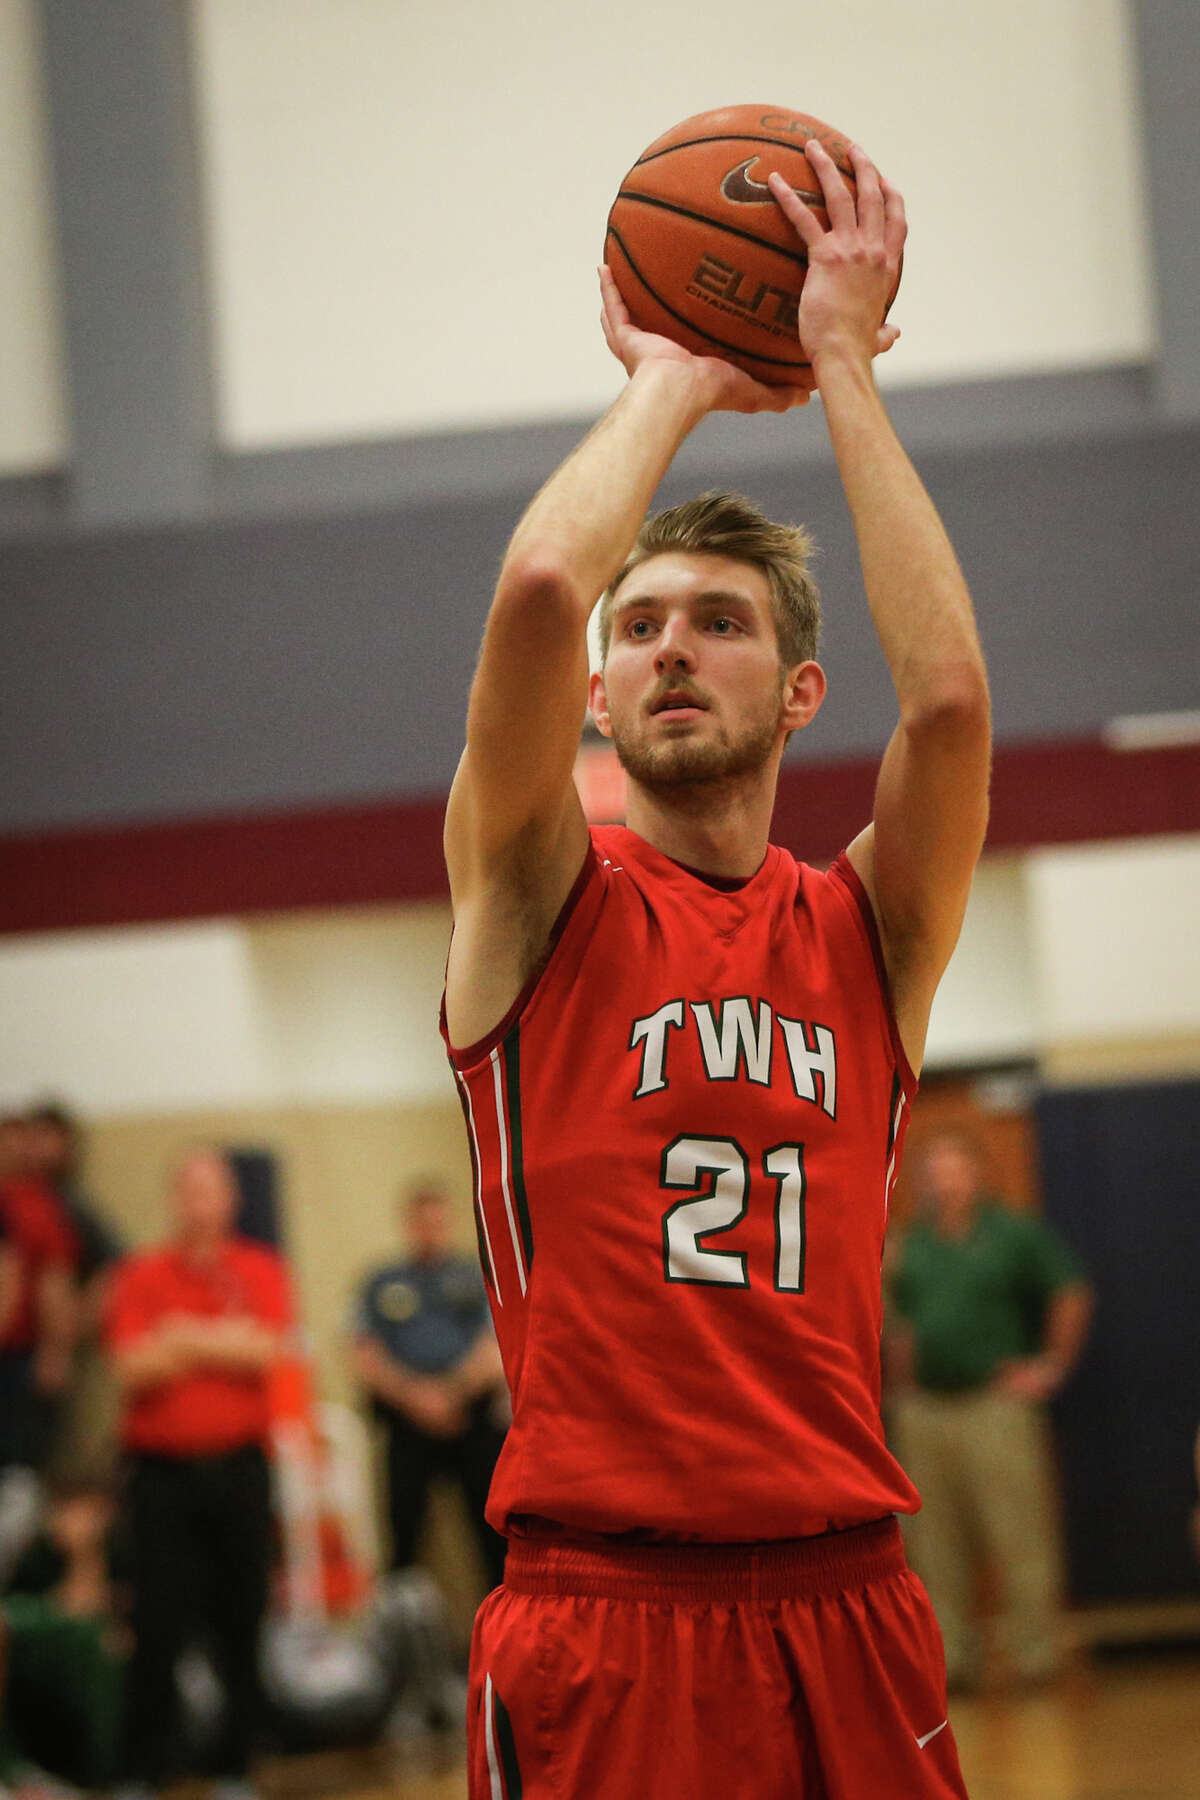 The Woodlands' A.J. Bullard (21) shoots a free-throw during the varsity boys basketball game against College Park on Tuesday, Jan. 24, 2017, at College Park High School. (Michael Minasi / Chronicle)